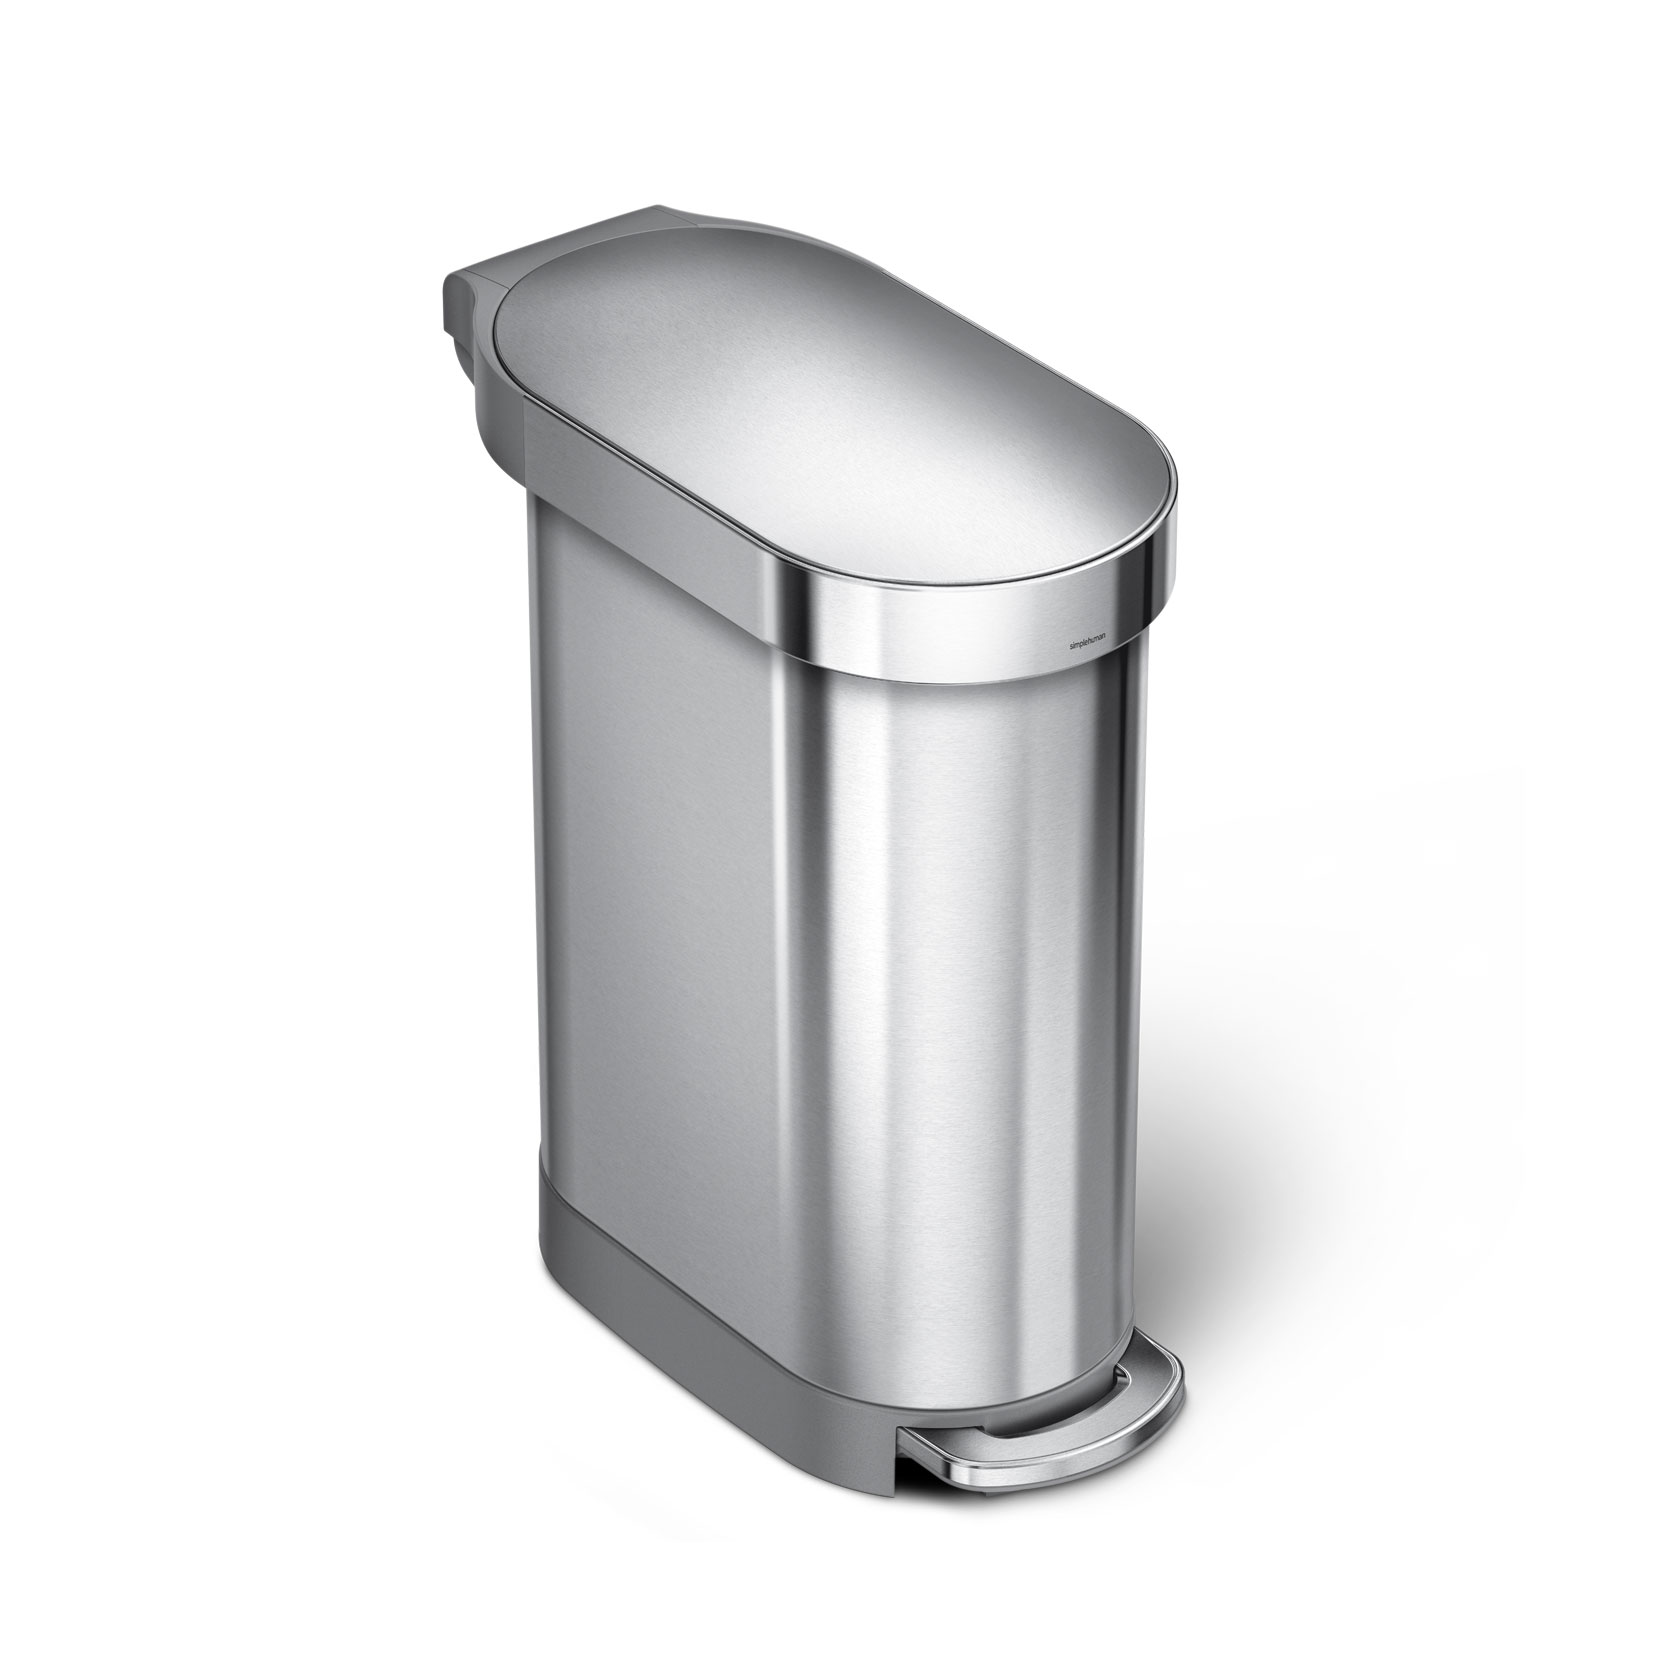 45 Litre Slim Step Can With Liner Rim Stainless Steel Simplehuman Kitchen Trash Cans Trash Can Small stainless steel trash can